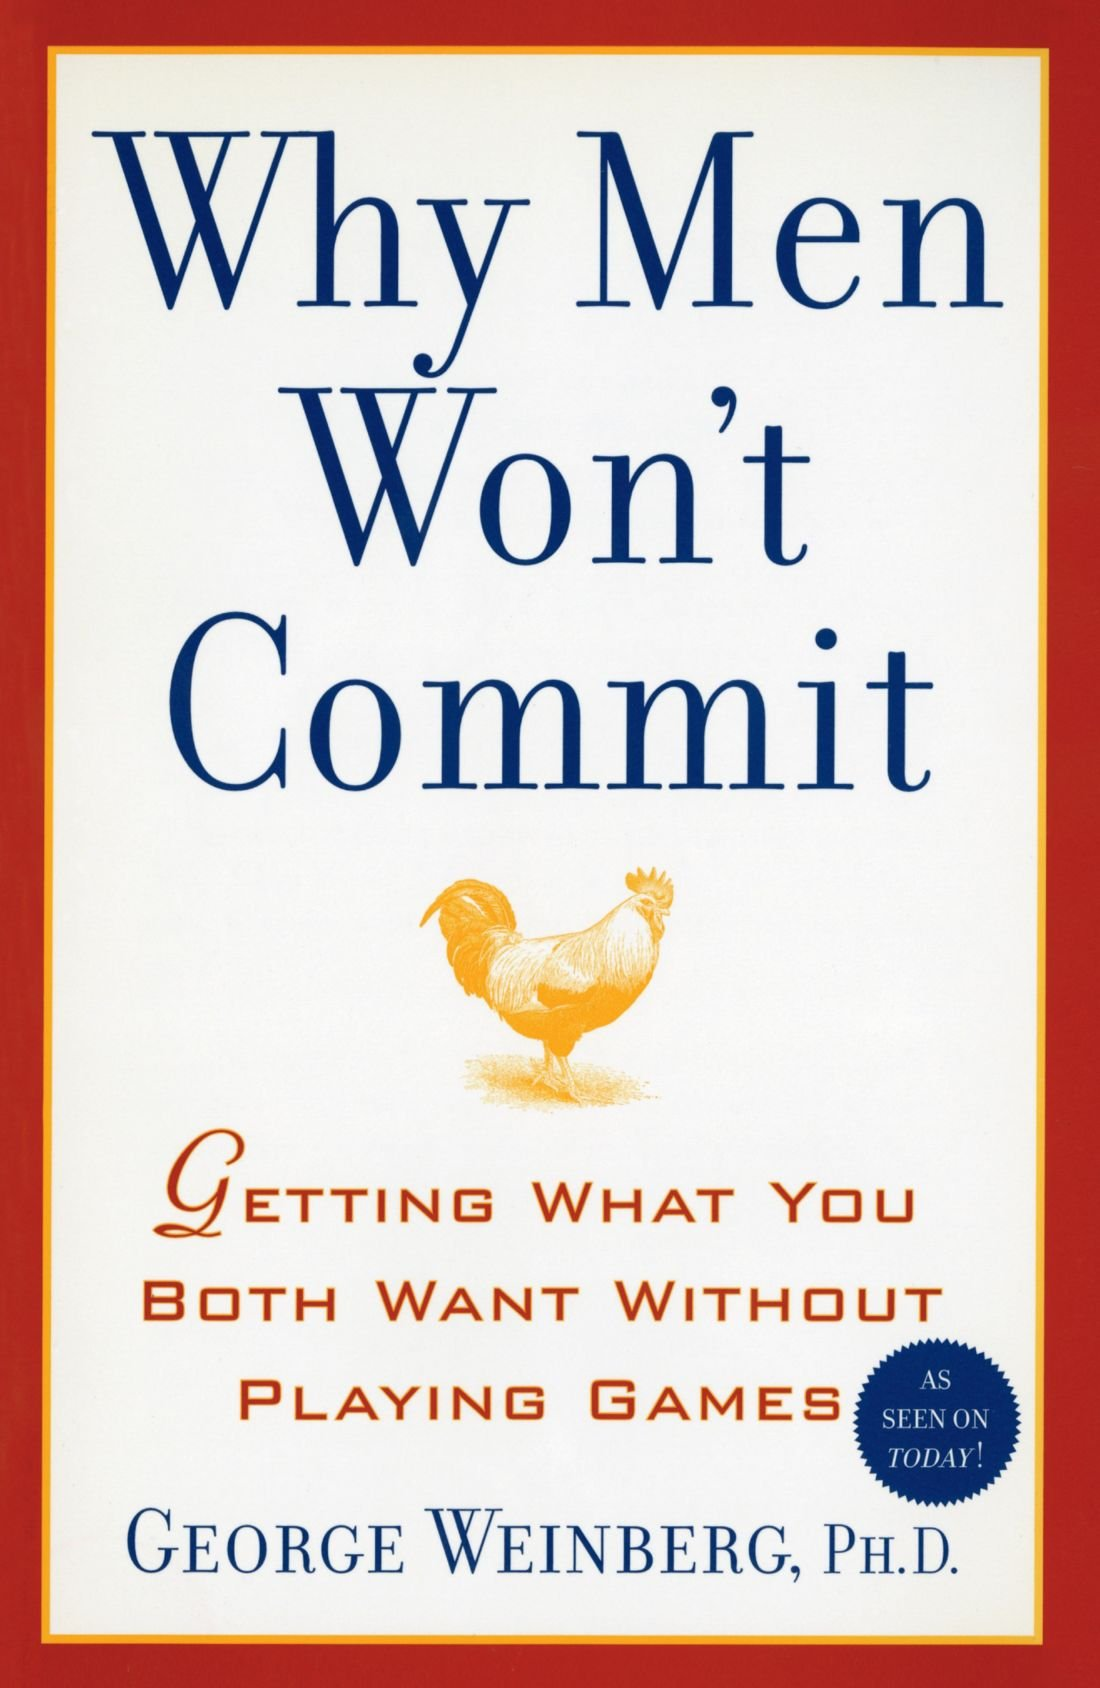 Why Men Won't Commit: Getting what you Both Want Without Playing Games. New York: Atria Books, 2003.